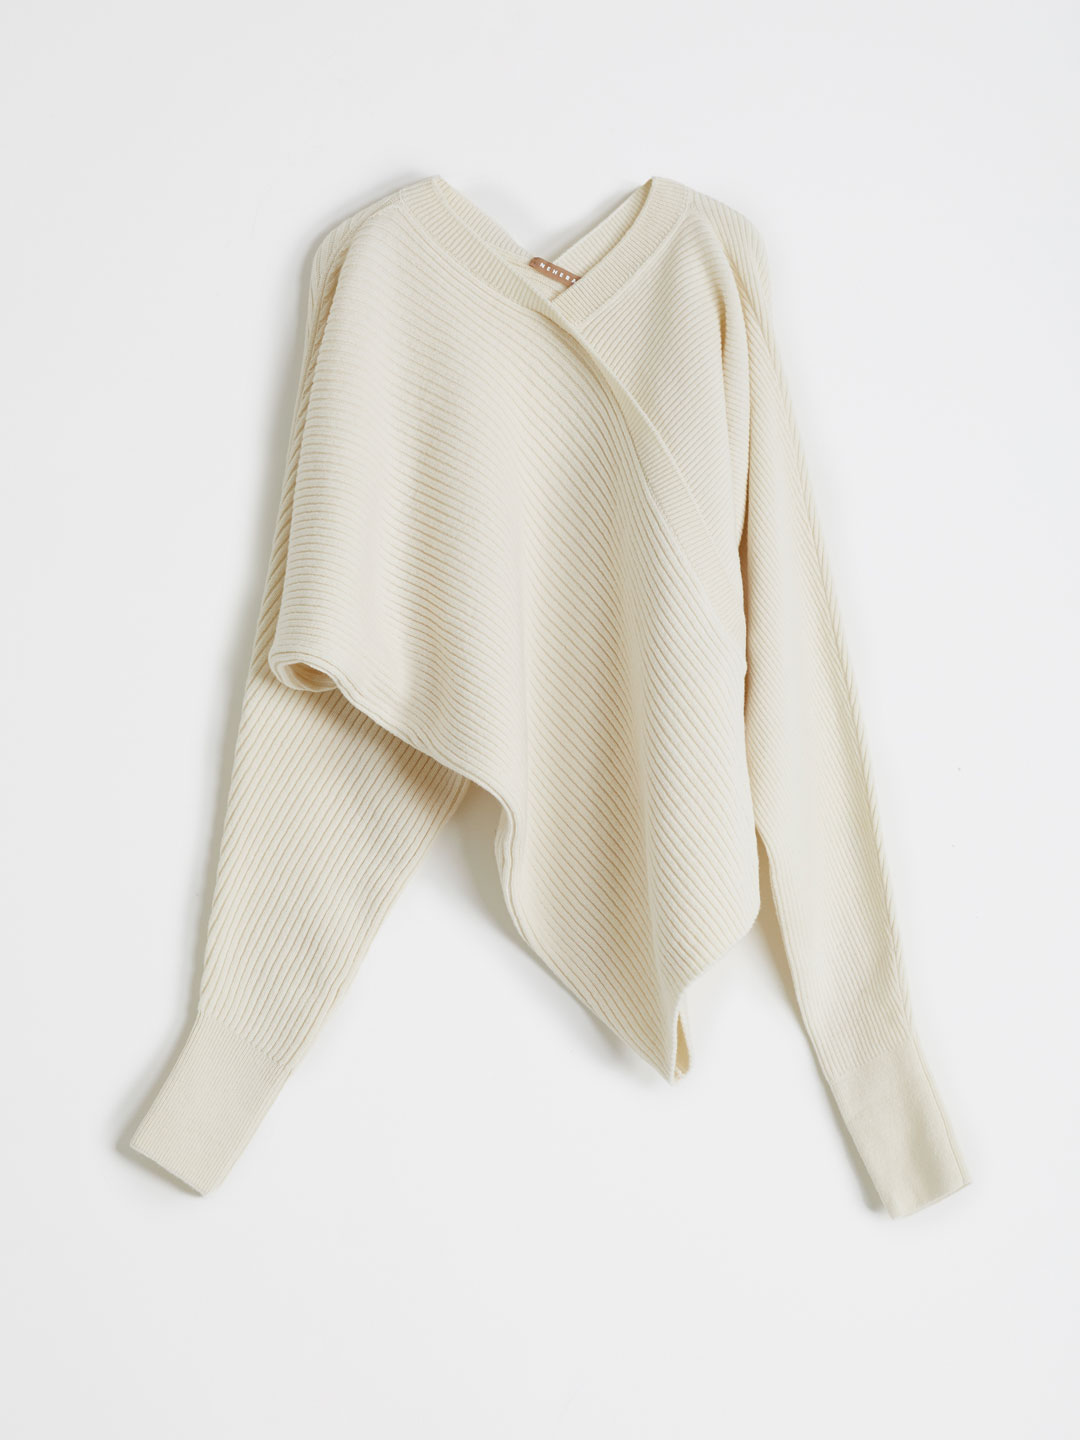 Chunky Soft Wool Knitted Top - Offwhite